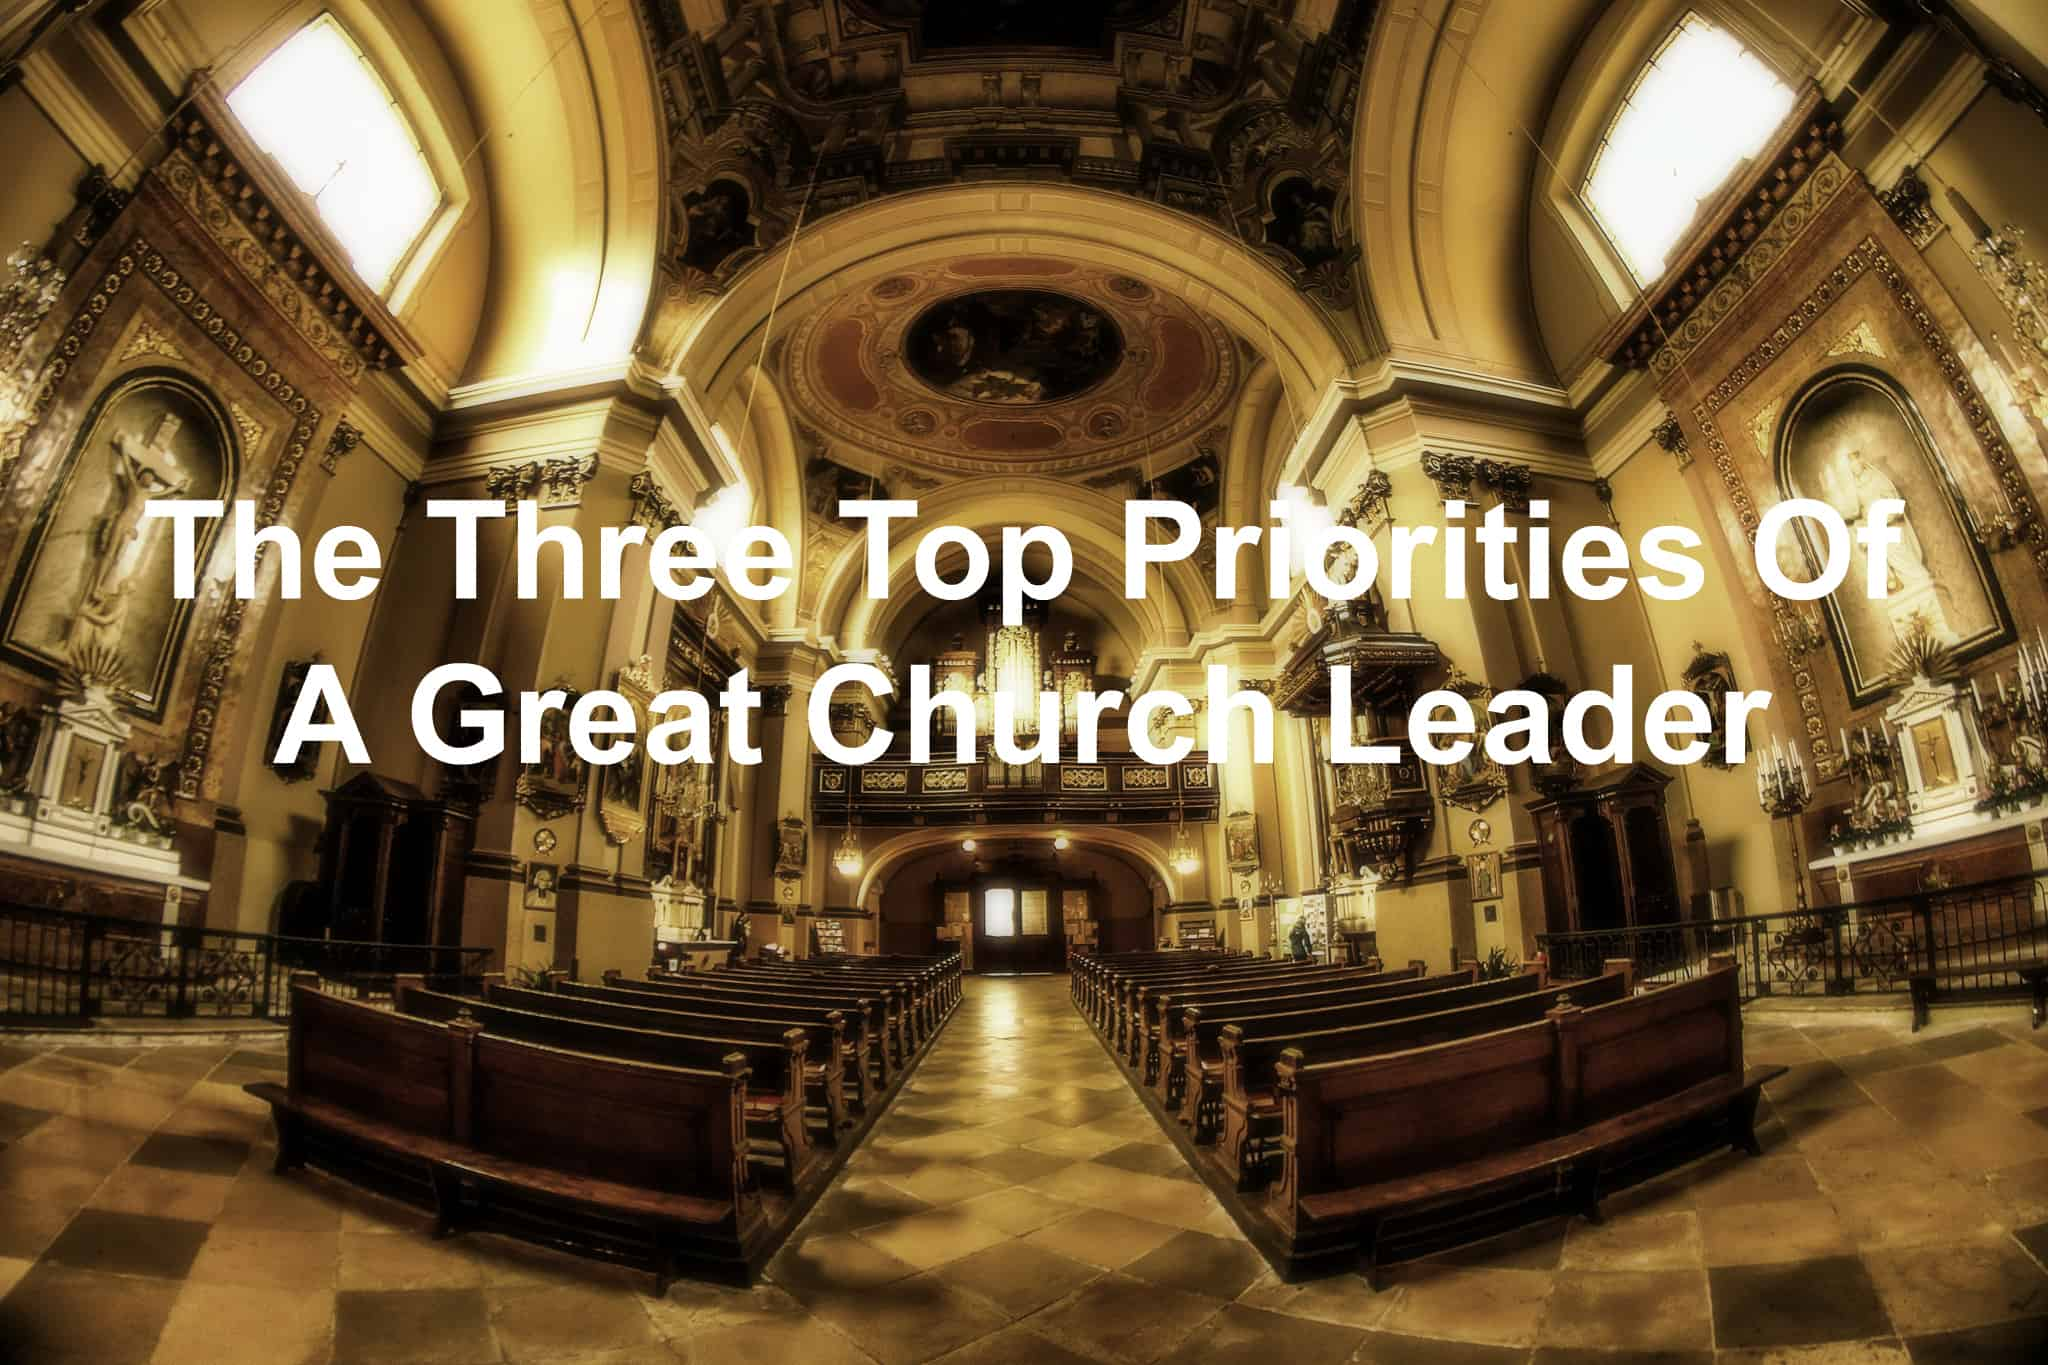 Church leaders need to have their priorities right